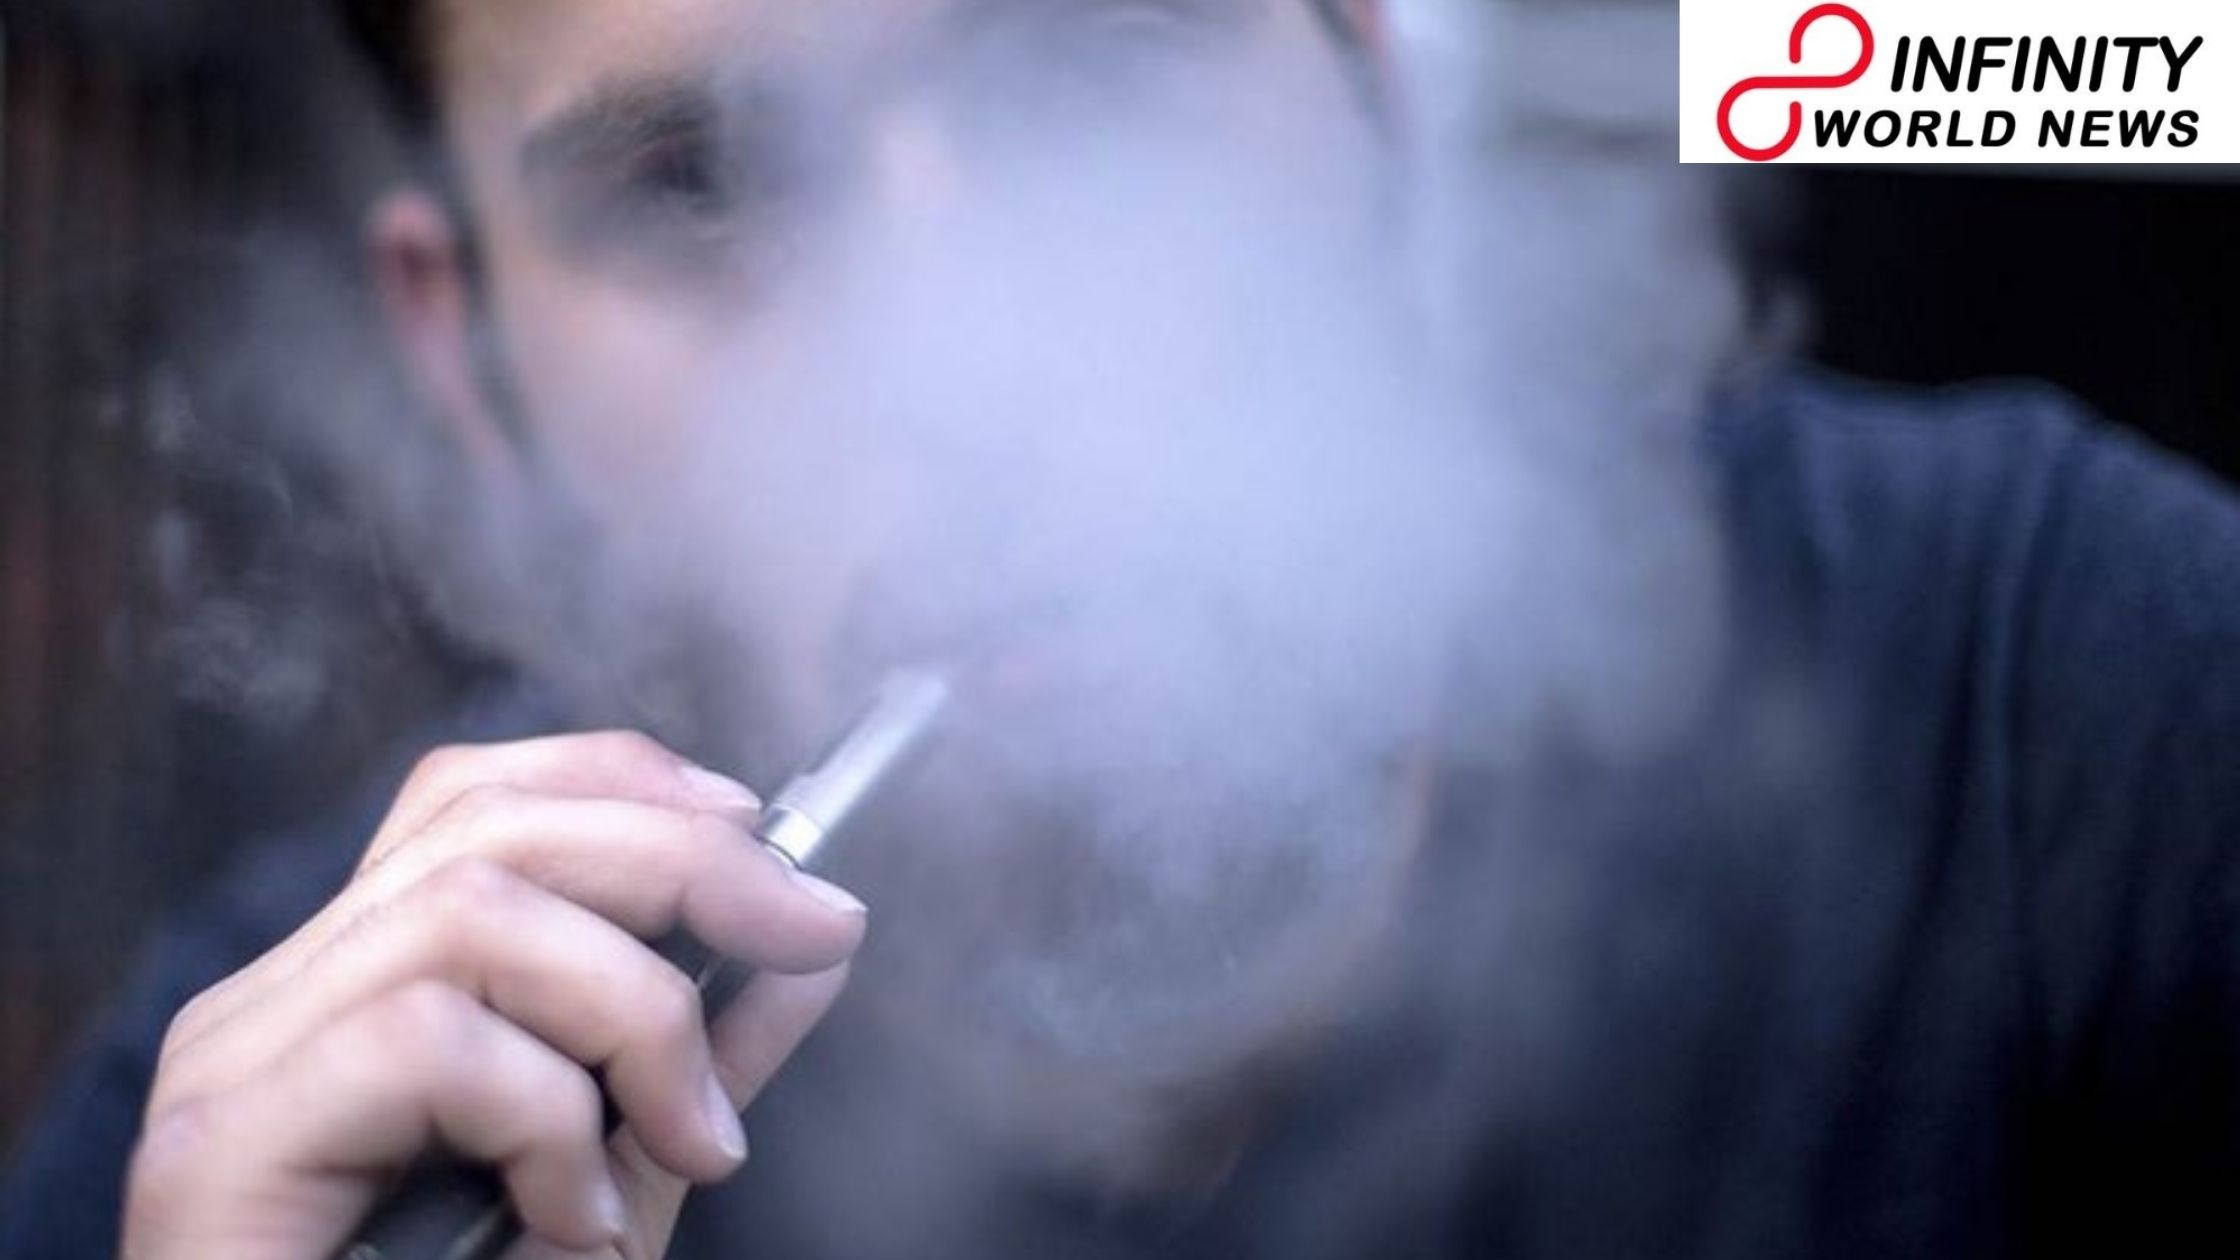 E-cigarettes can help stop smoking, says London-based investigation